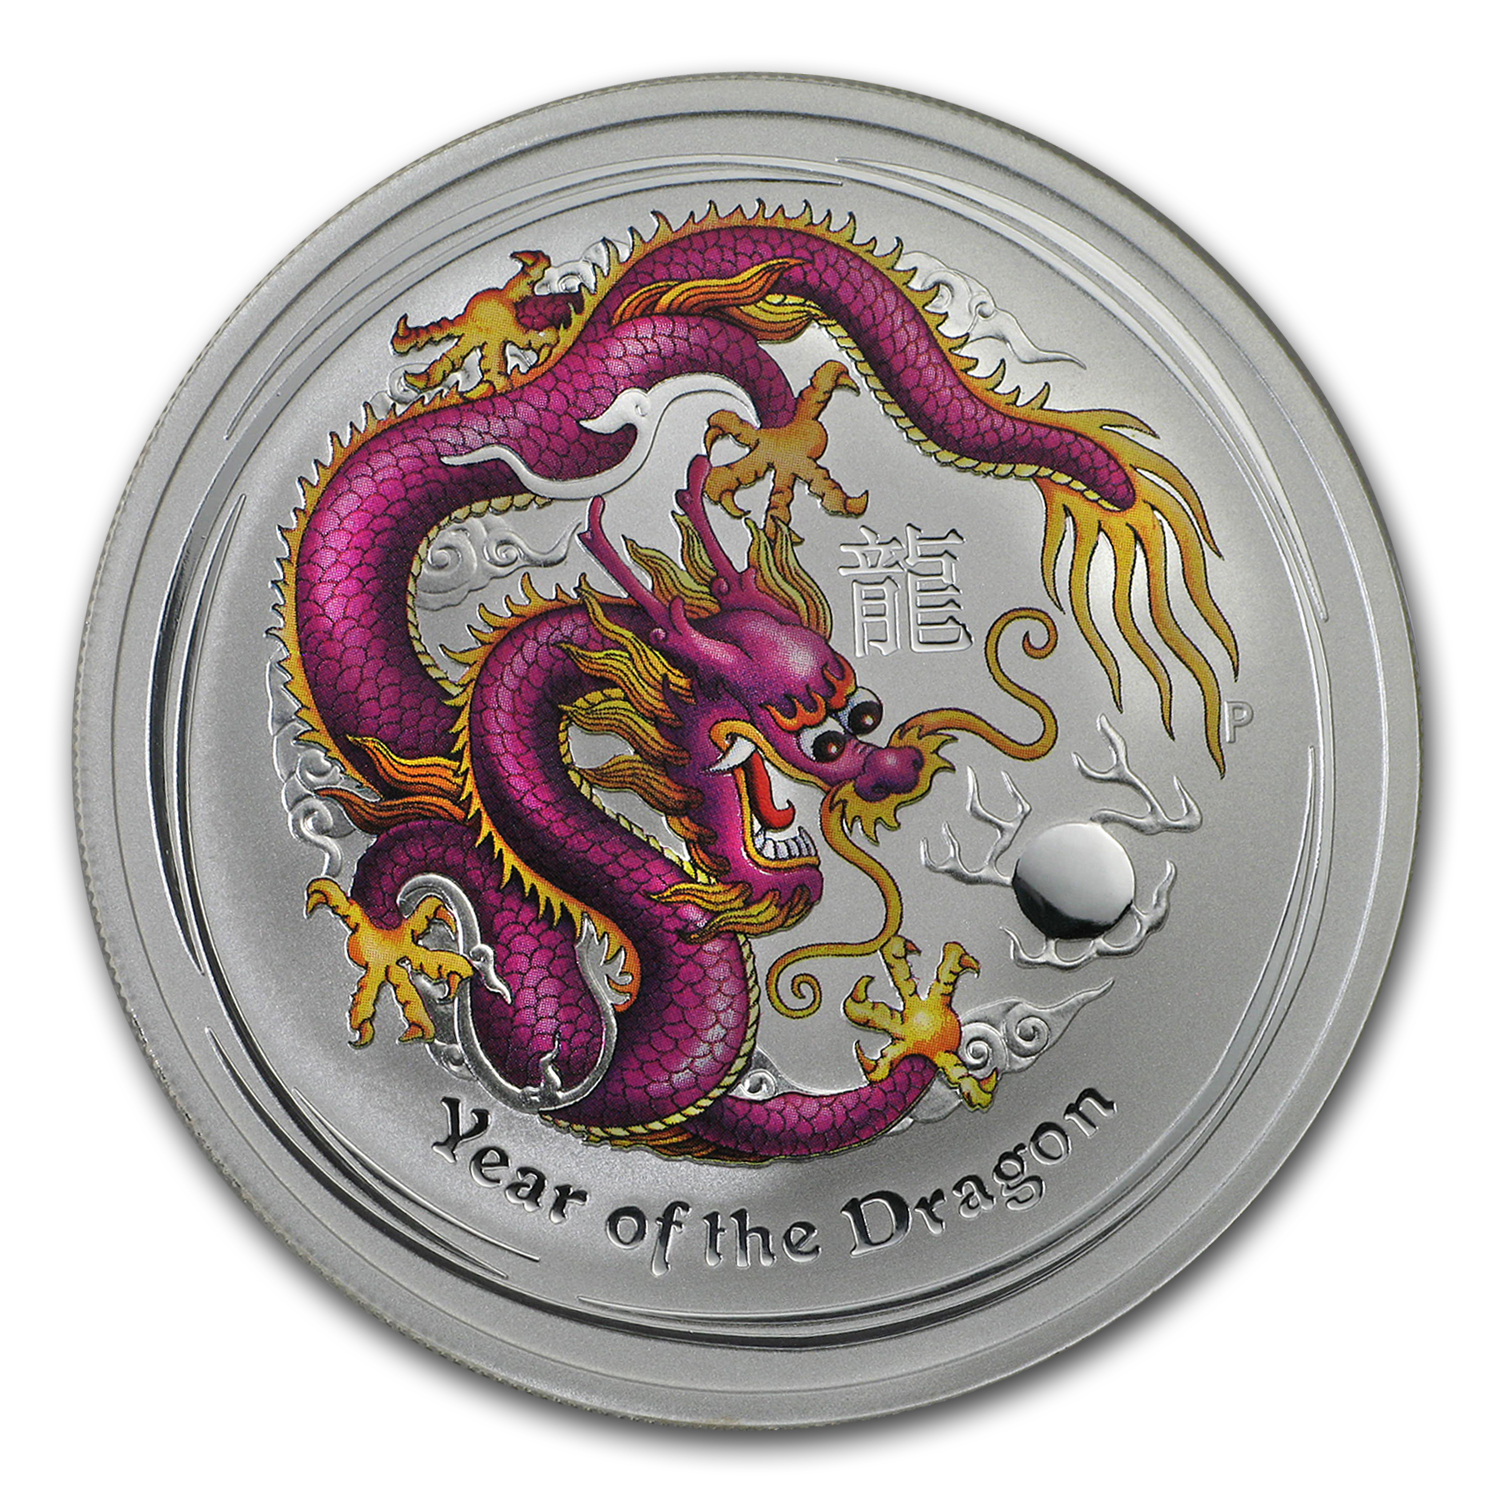 2012 10-Coin Australia 1 oz Silver Dragon Set BU (Colorized)